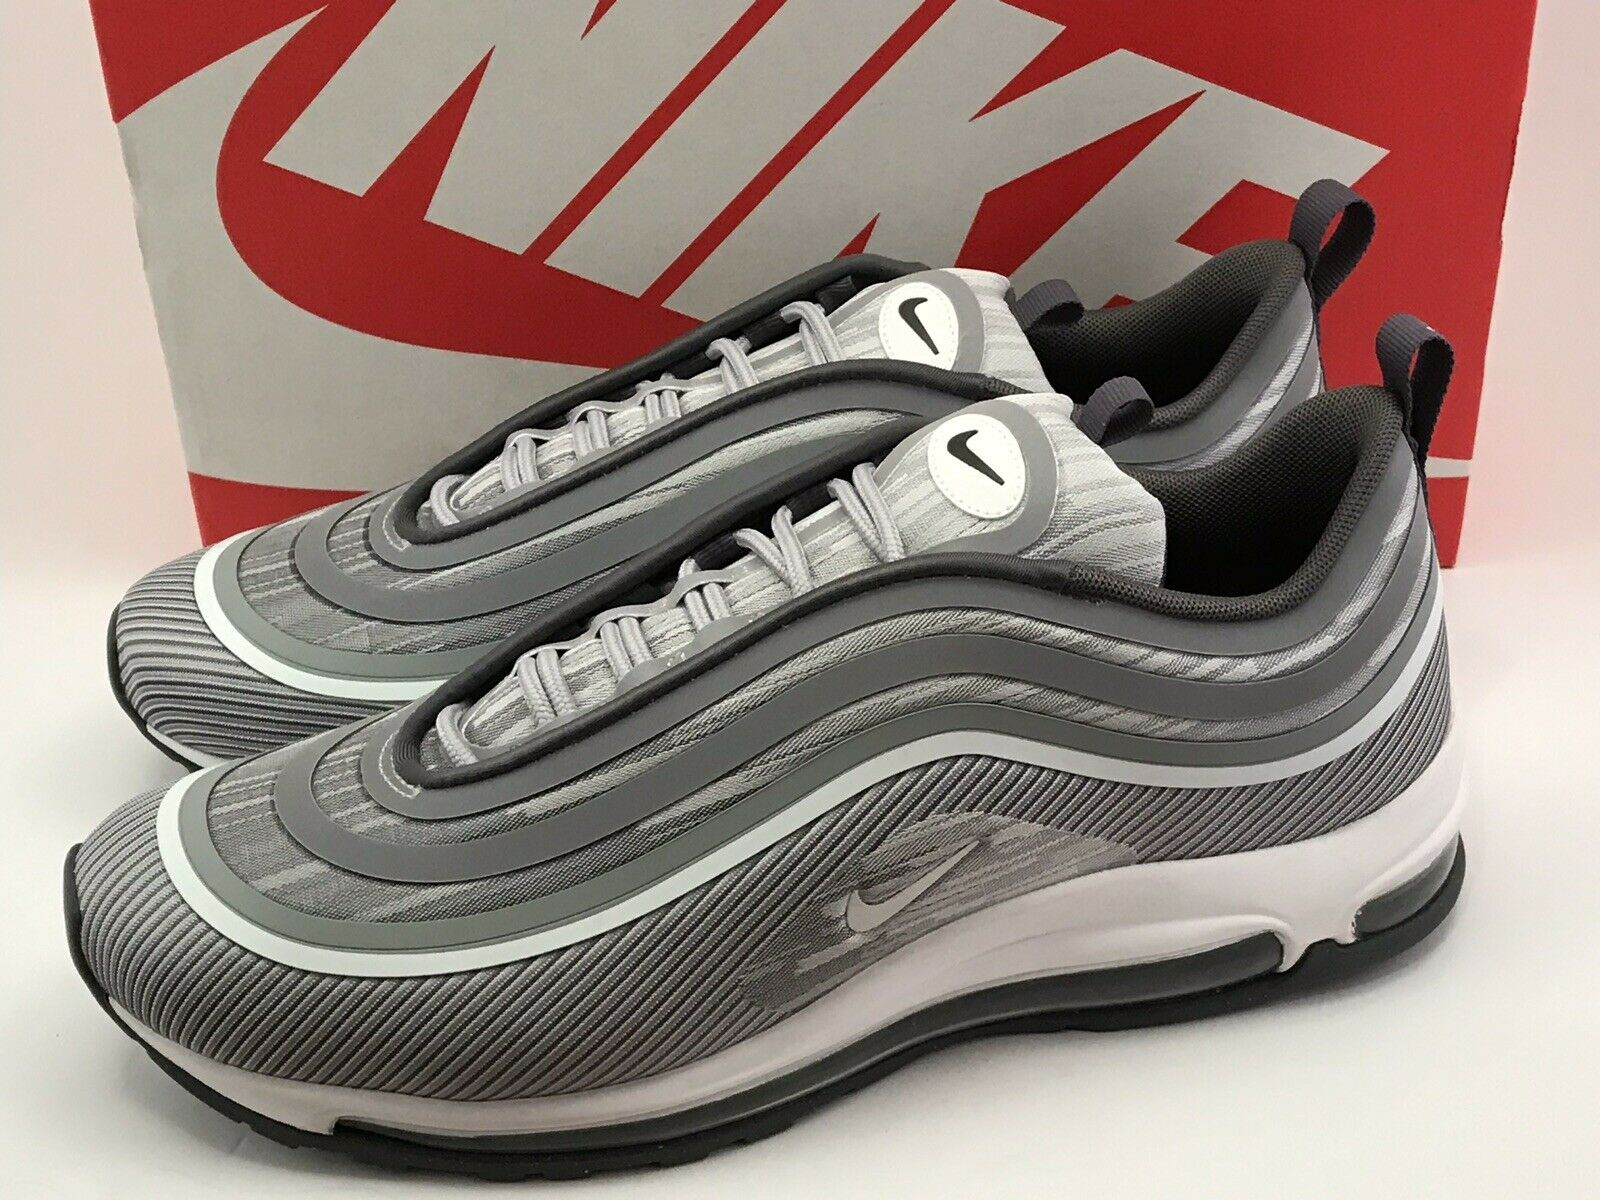 Nike Air Max 97 Ultra '17 Wolf Grey White Silver Bullet 918356 007 Size 10.5